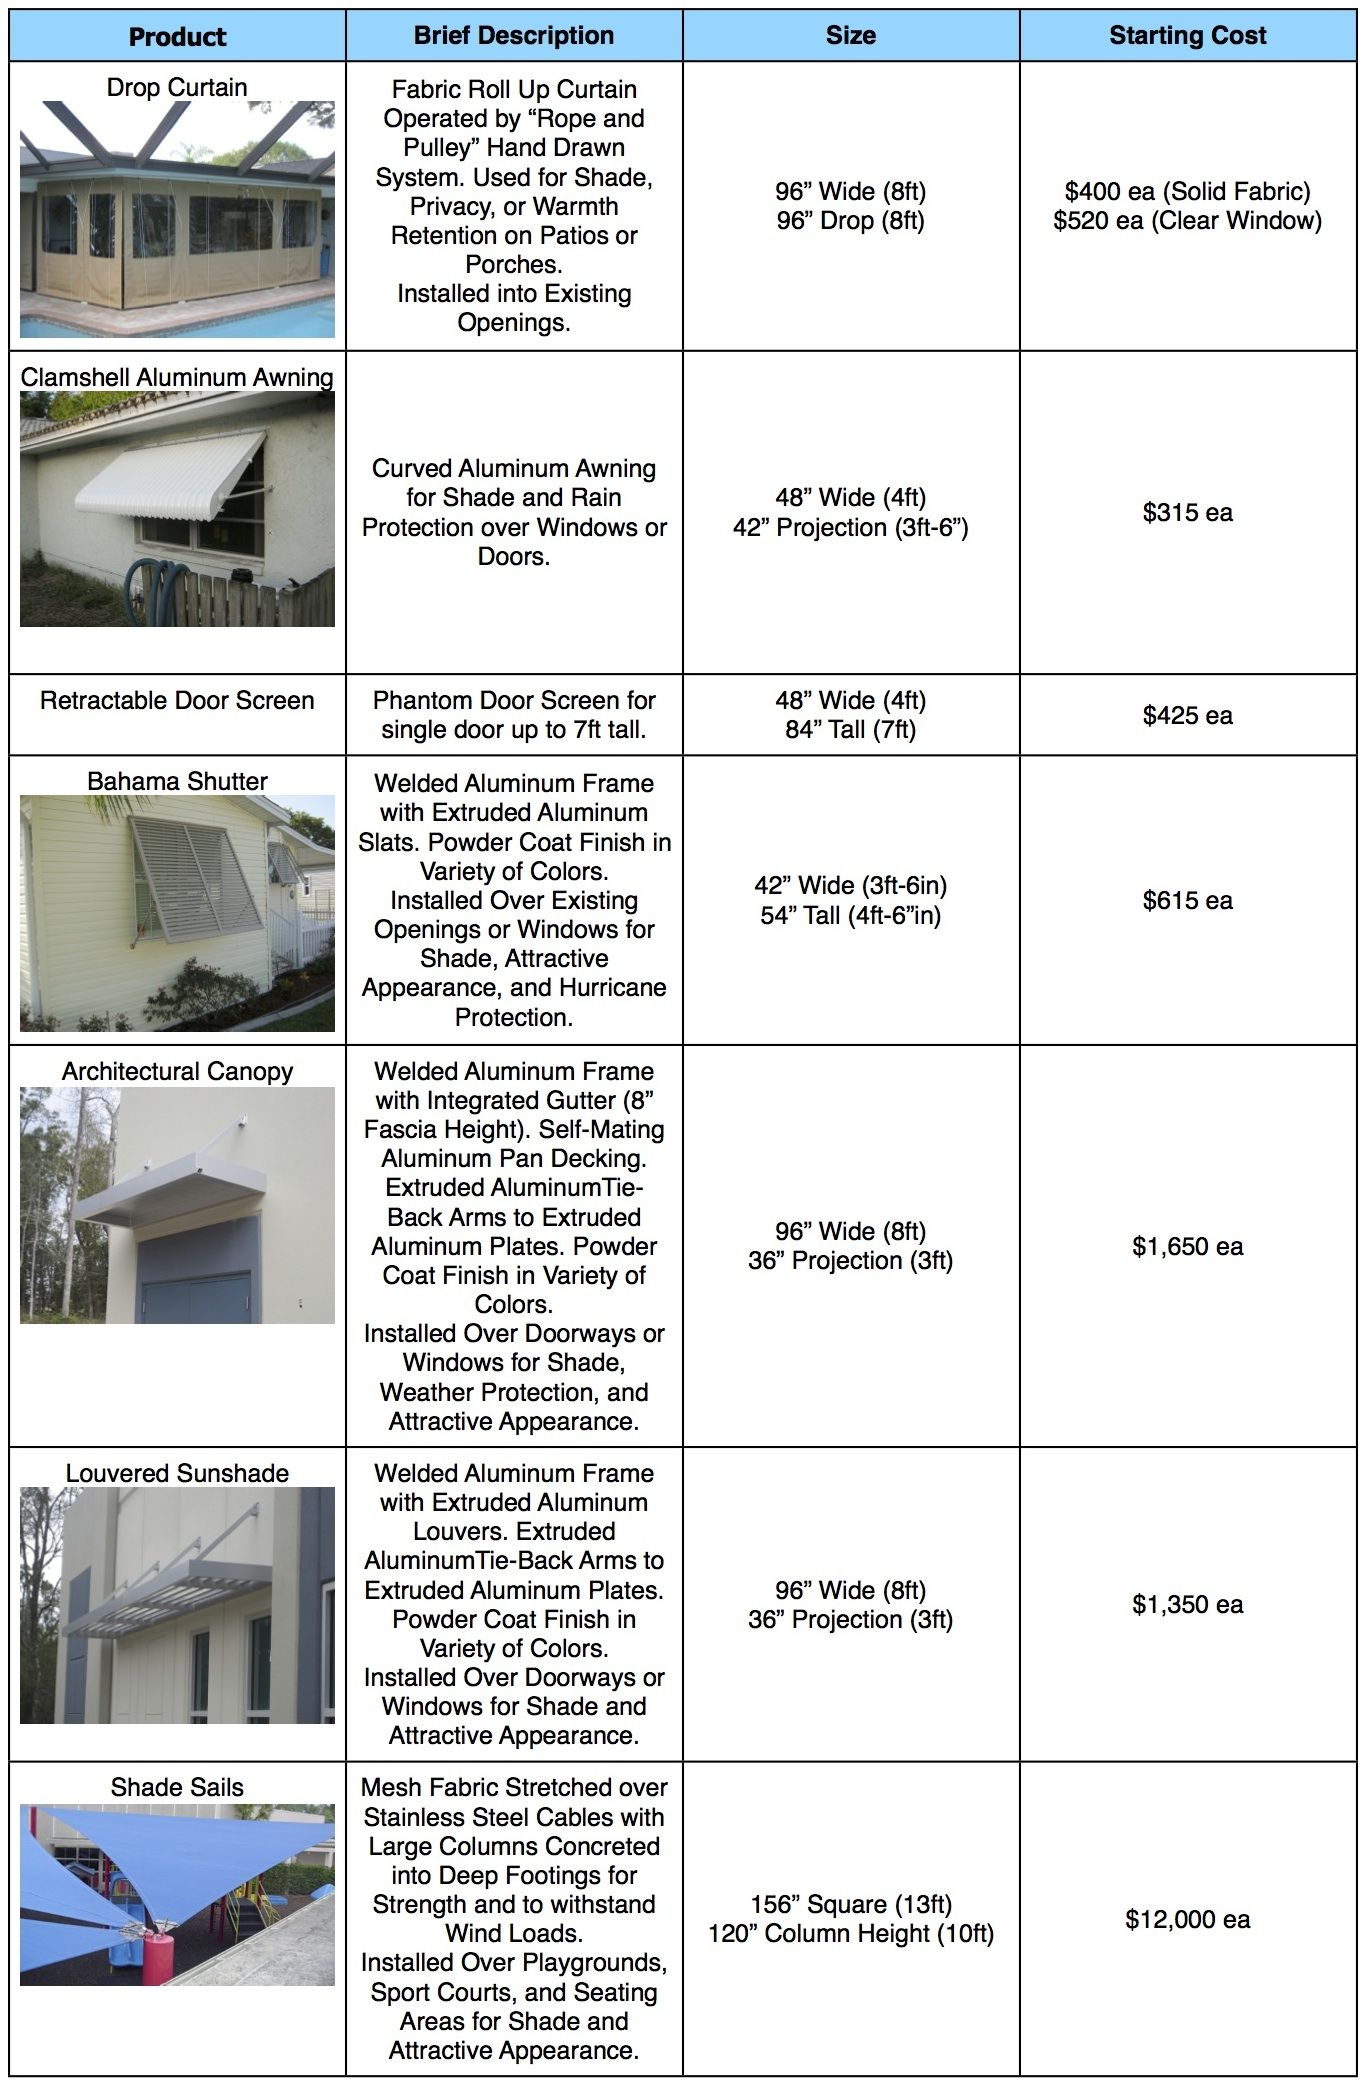 Awning Pricing Screen Pricing Retractable Awning Pricing ...